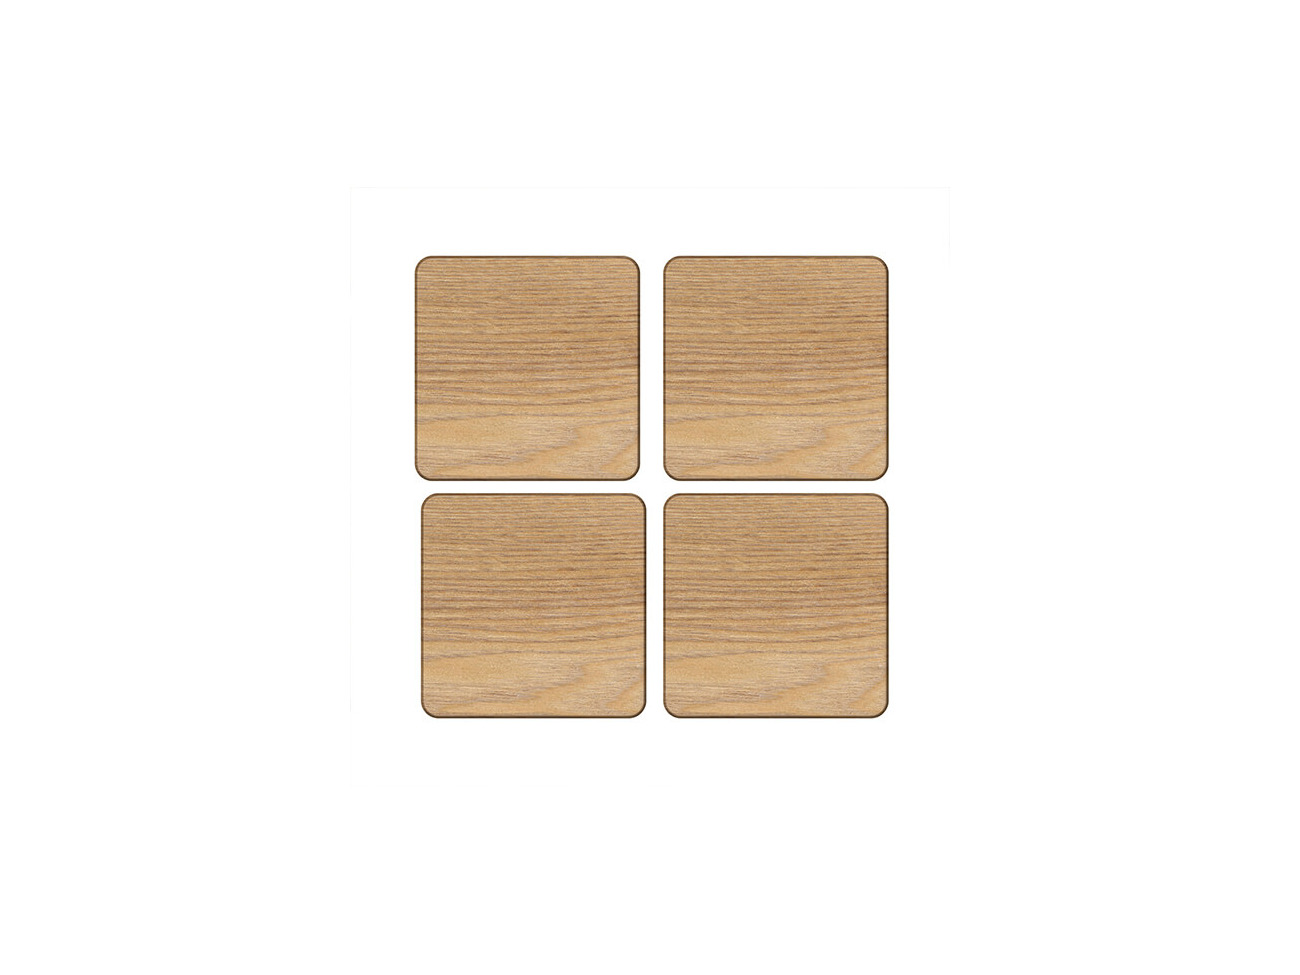 10.5 x 10.5 cm 4 x 4 Set of 4 Oak Veneer Coasters by Creative Tops